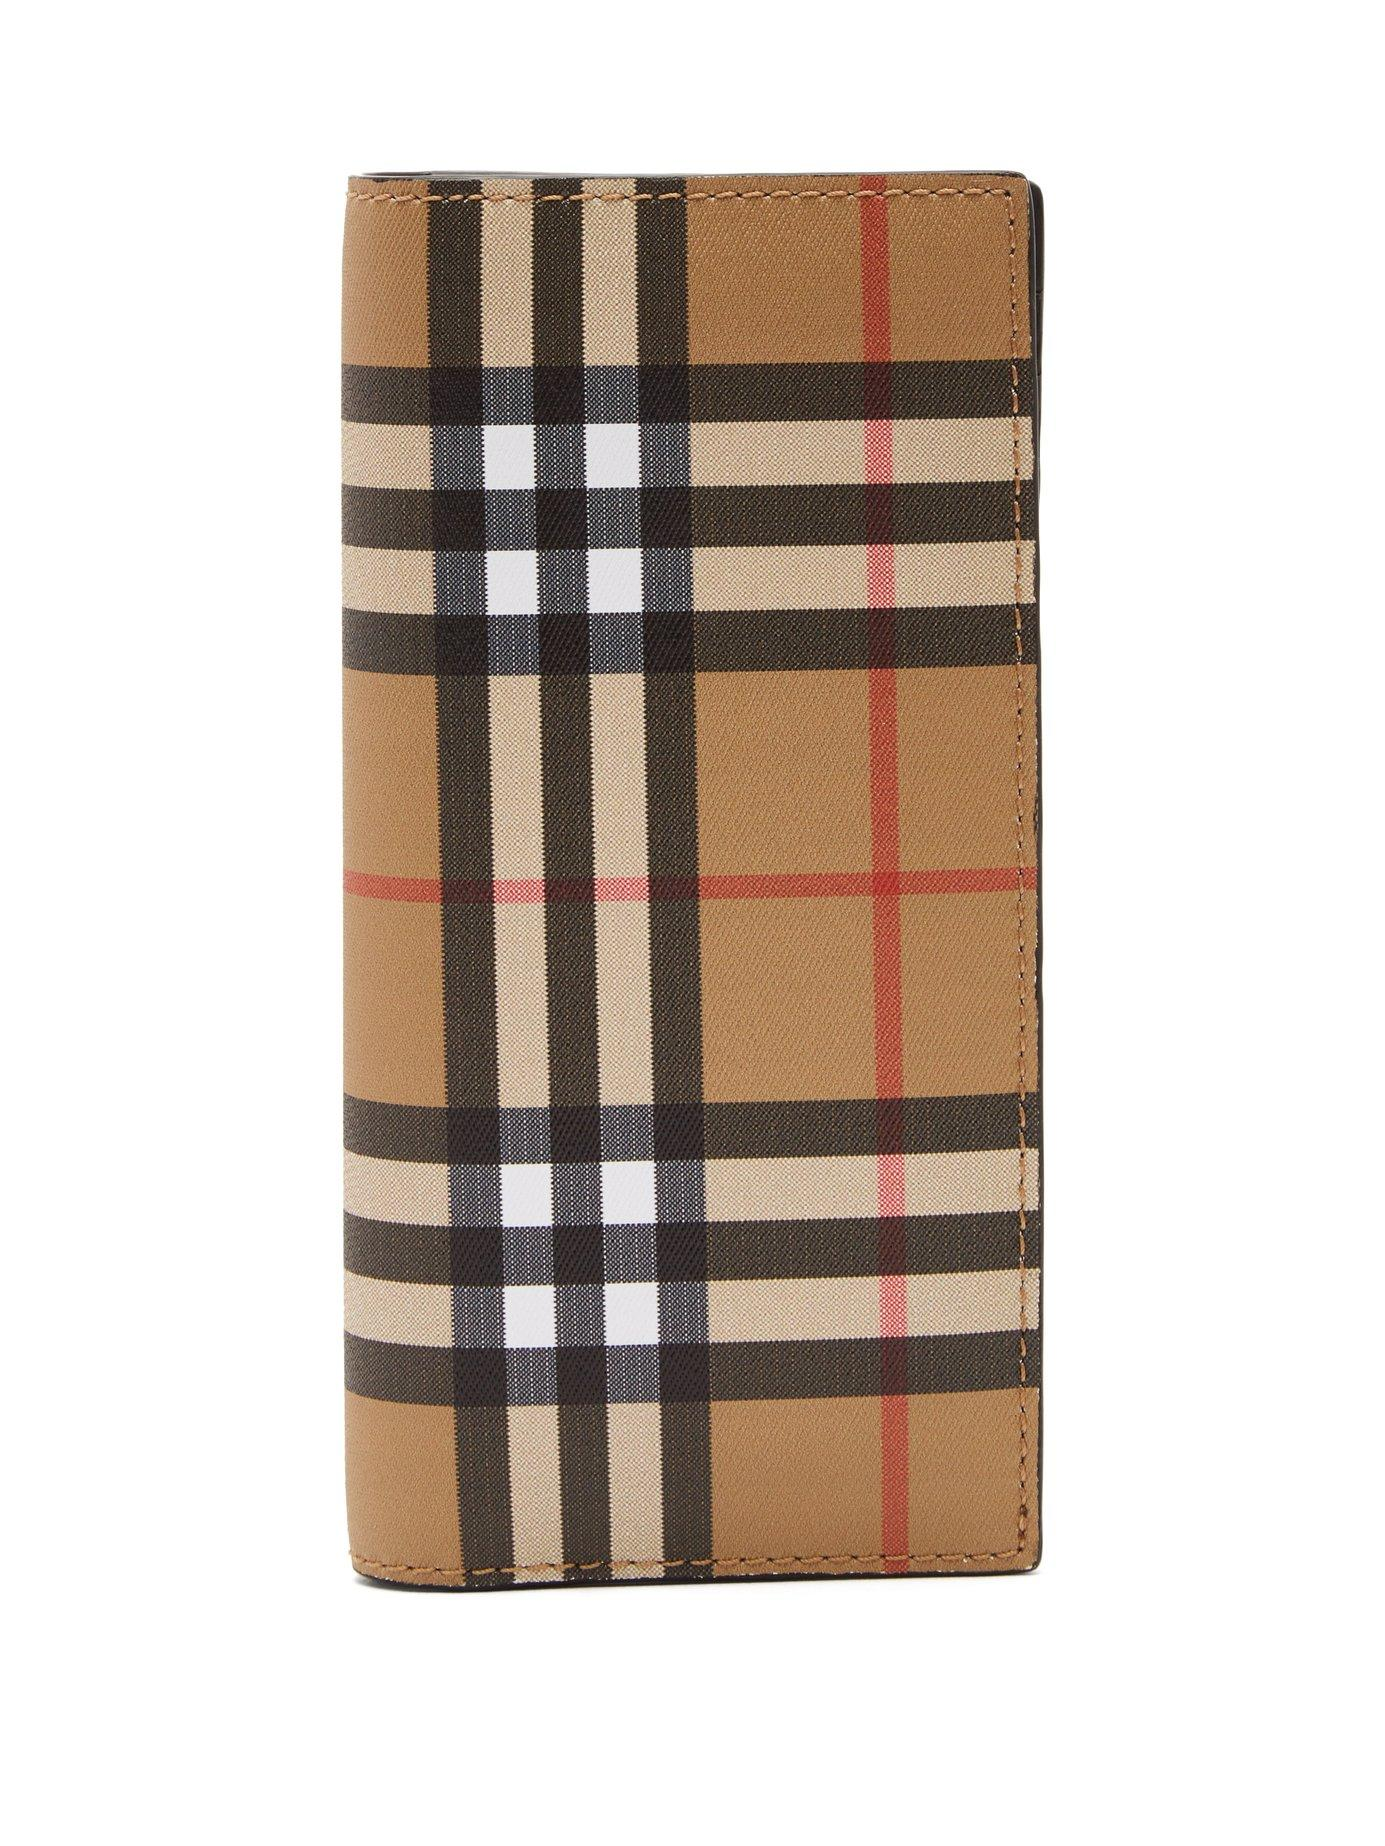 17bb9fabe158c Burberry Cavendish Vintage Check Continental Leather Wallet In Neutrals